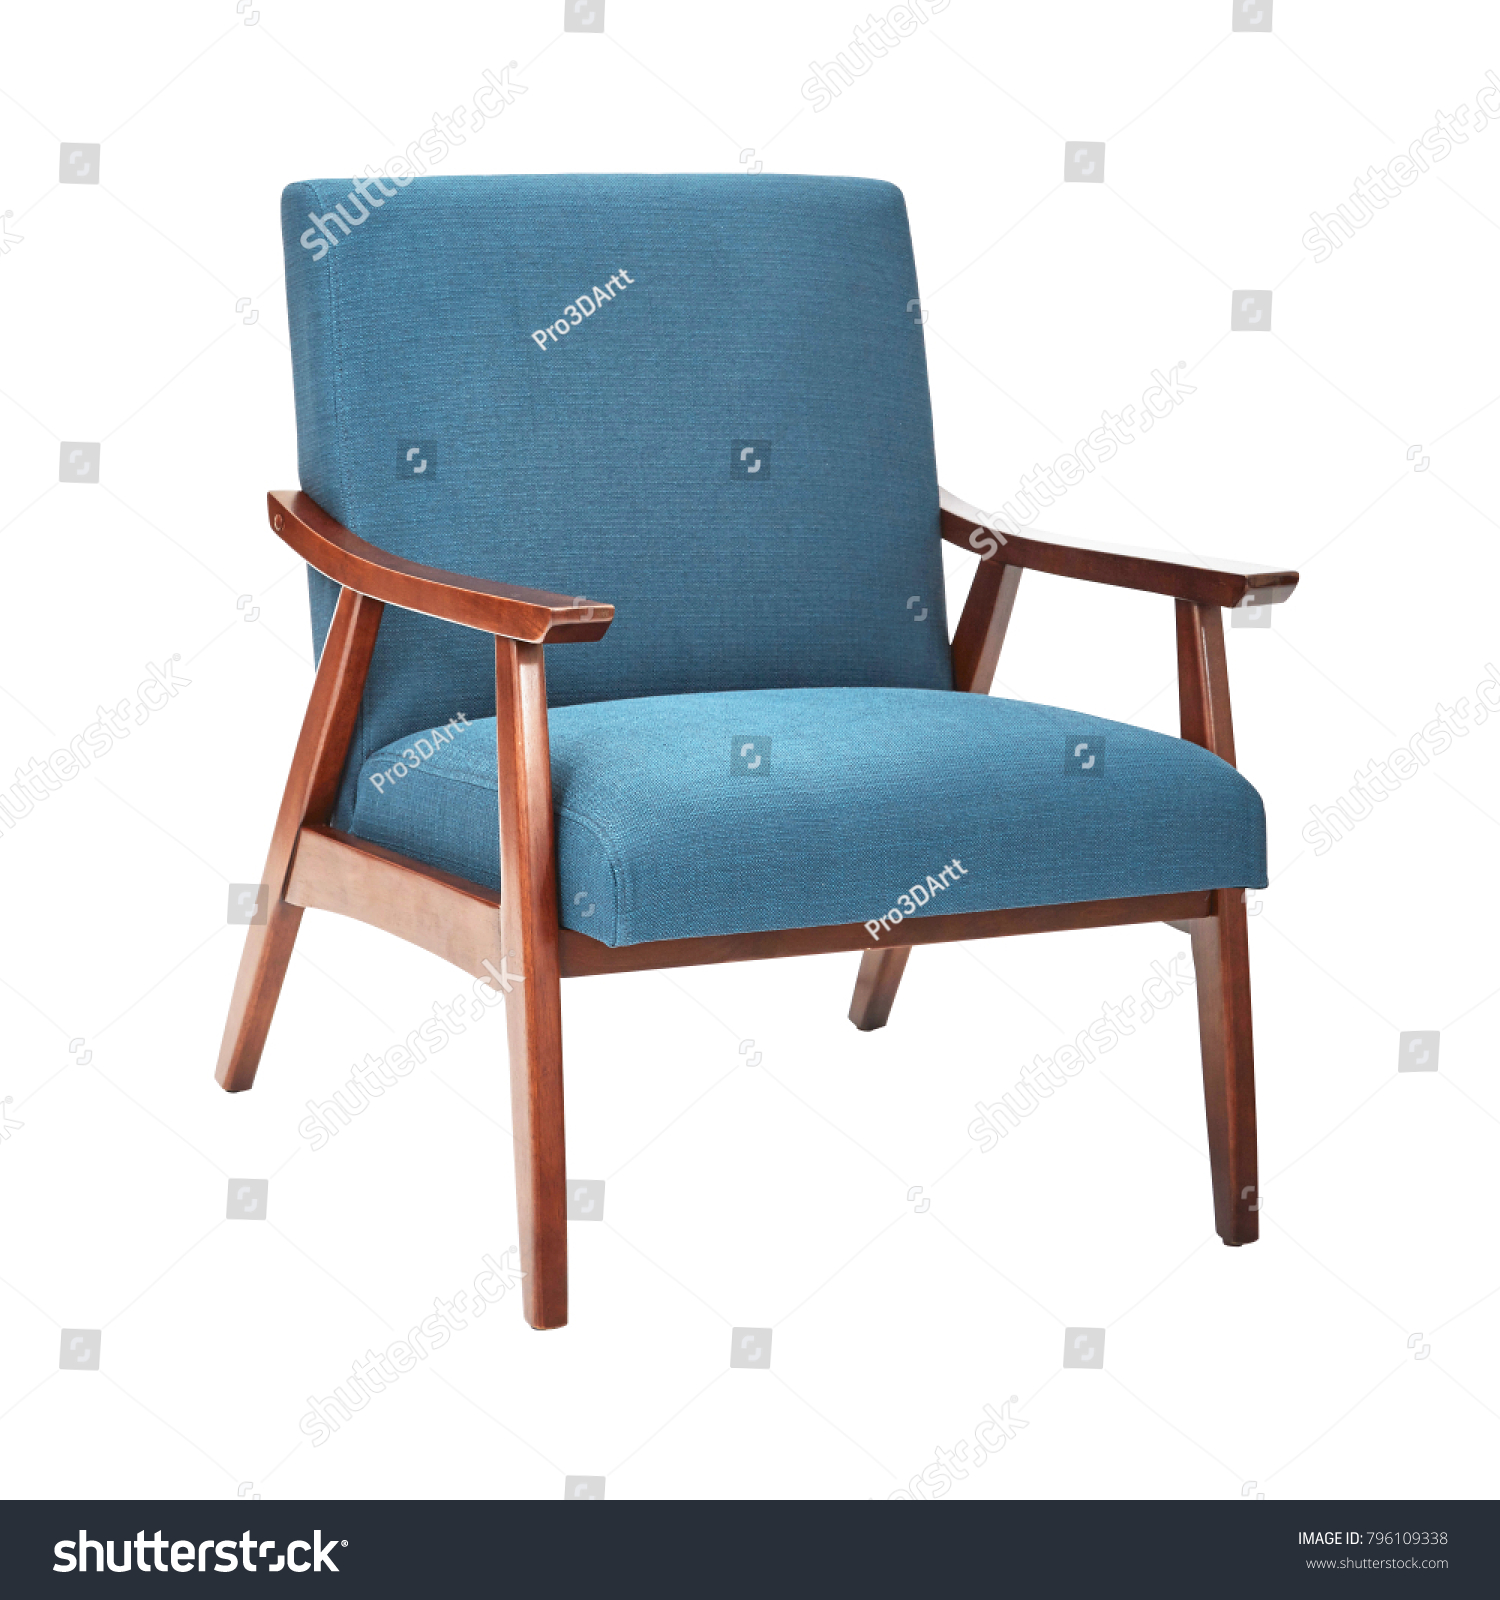 Mid century modern chair isolated on white background modern arm chair with wood armrests